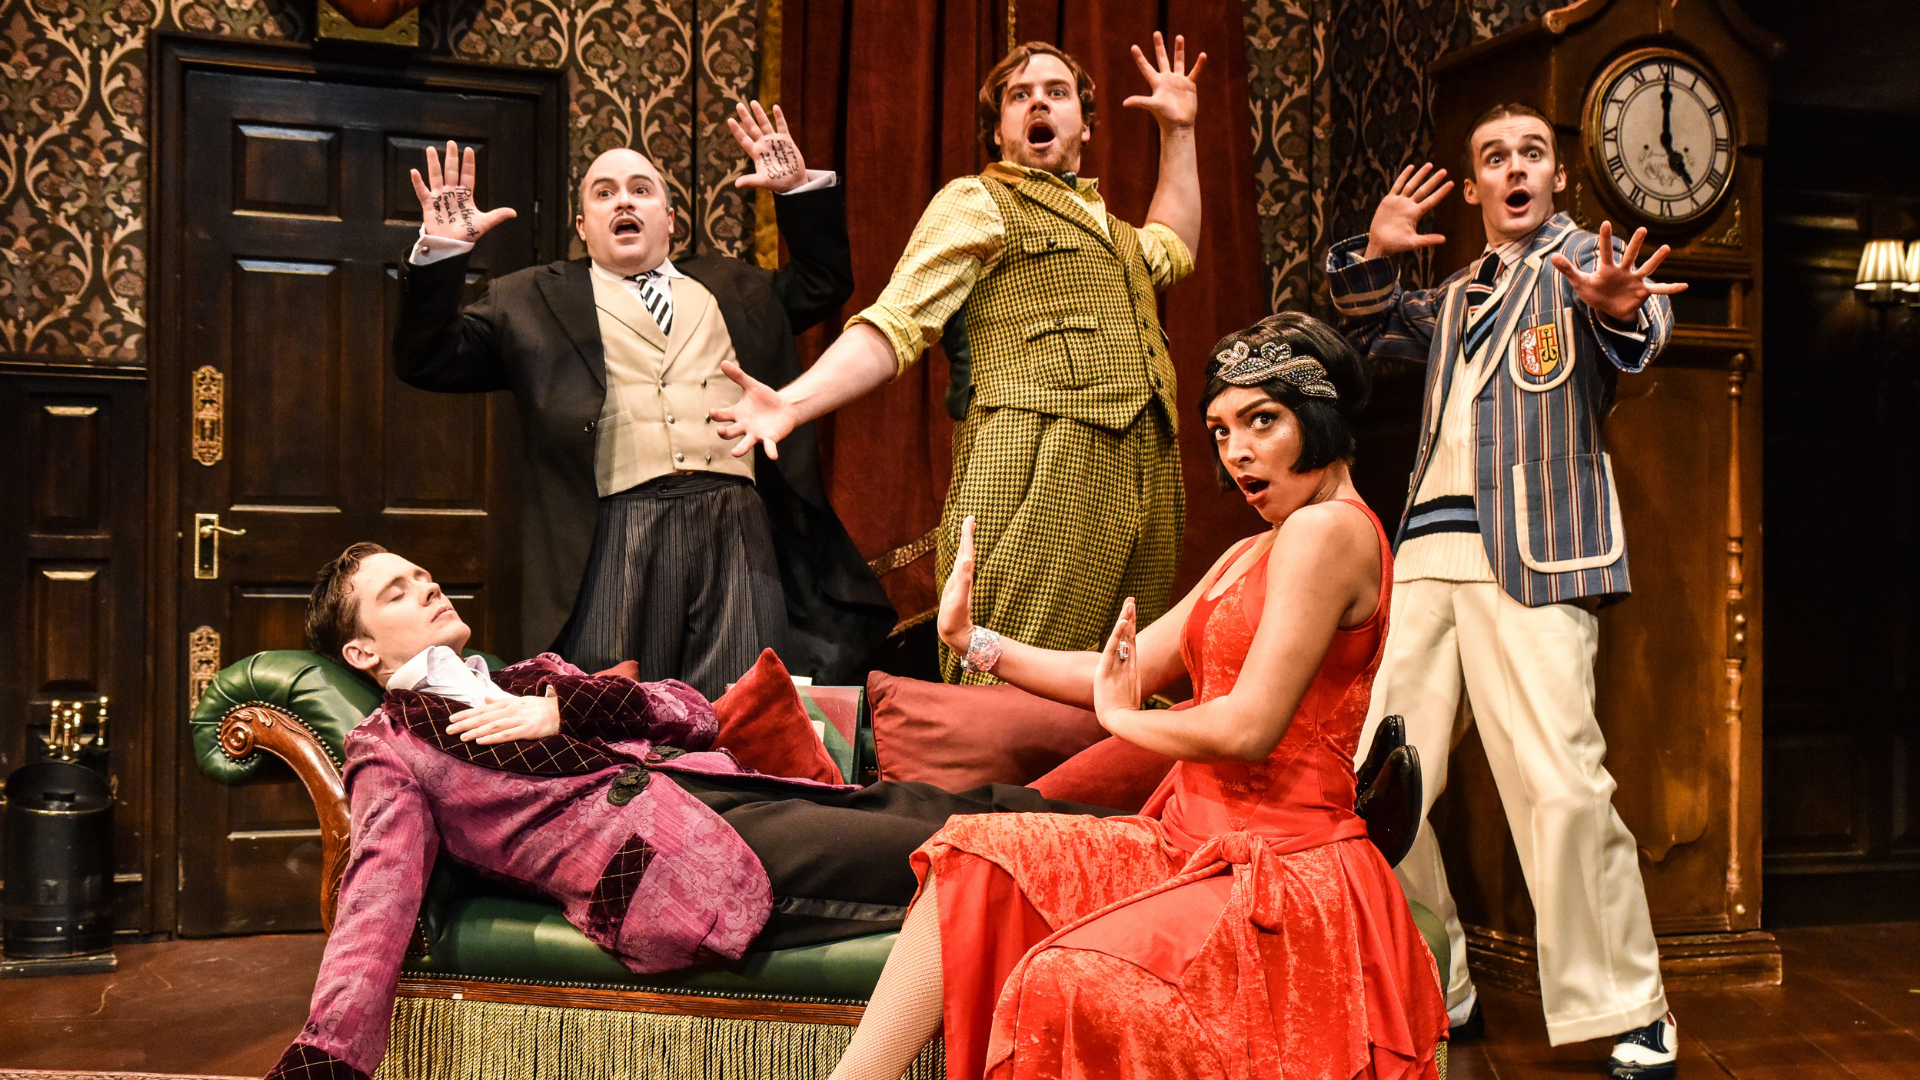 The Play That Goes Wrong Production Shot: Jonathan (Seán Carey) is laid down on a chaise longue with his eyes closed. He is surrounded by Dennis (Edward Howells), Robert (Matthew Howell), Sandra (Laura White) and Max (Tom Babbage) who all are looking towards the audience with shocked looks on their faces.